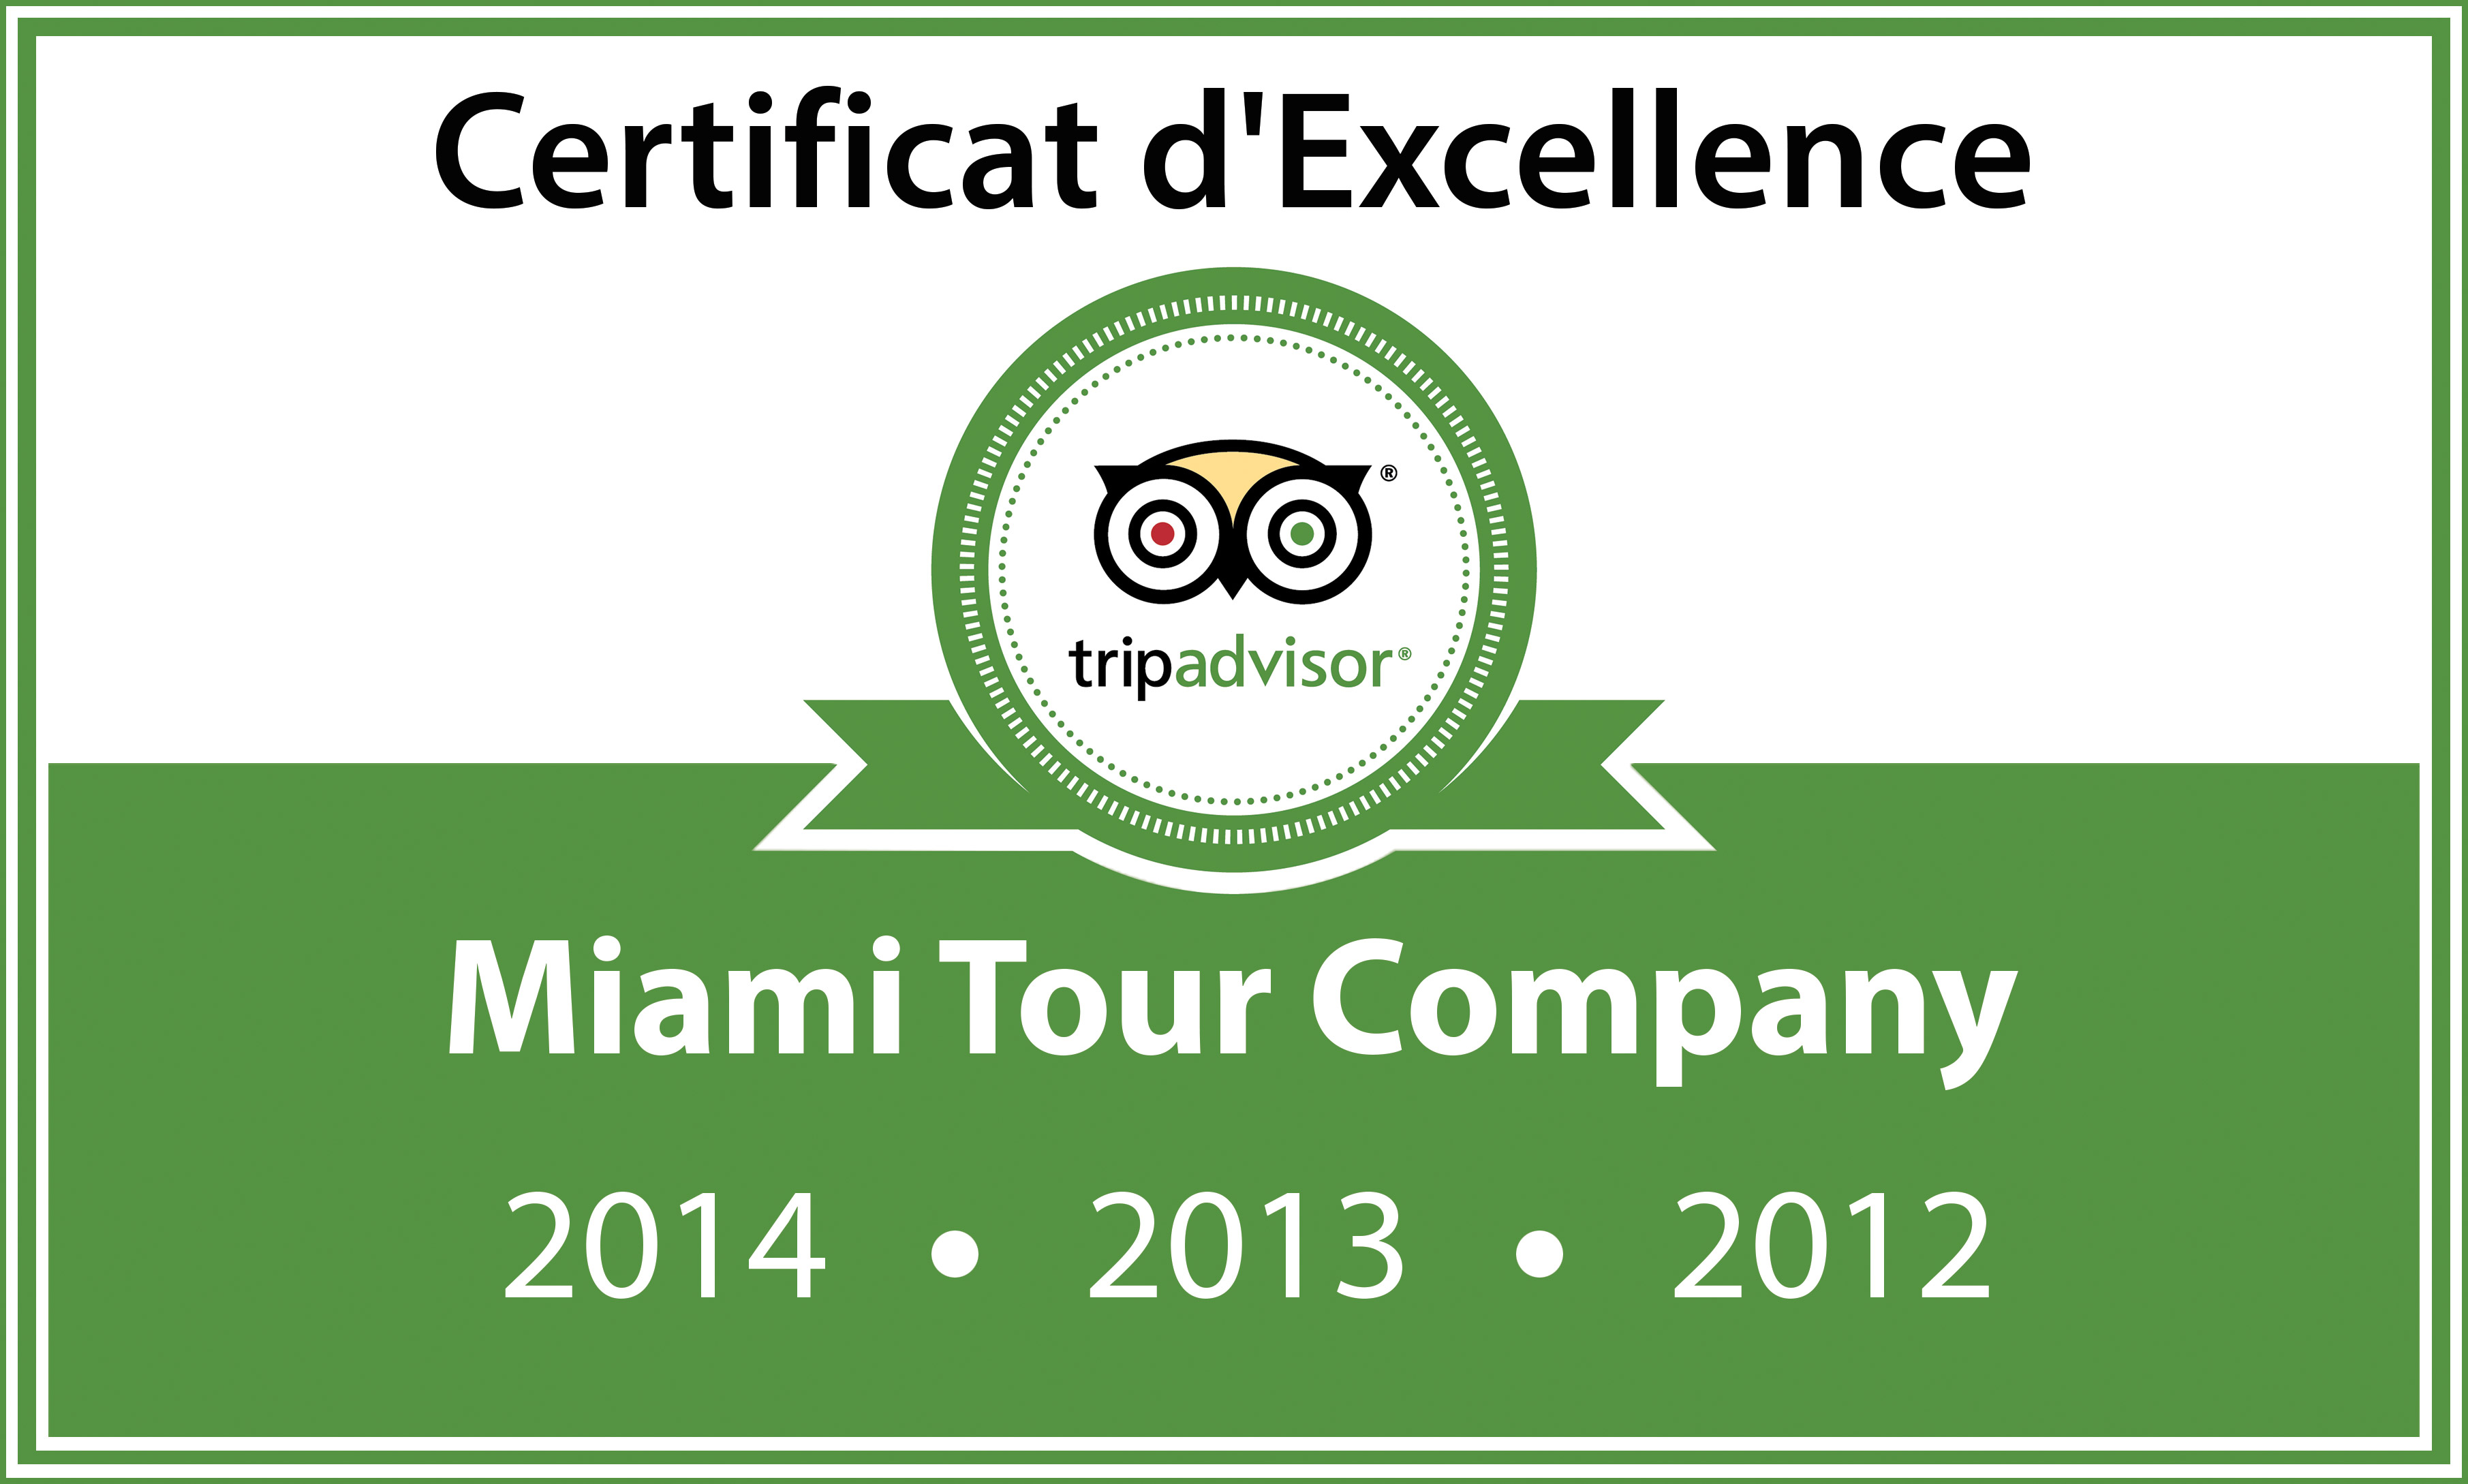 TripAdvisor Certificate of Excellence awards for customer satisfaction